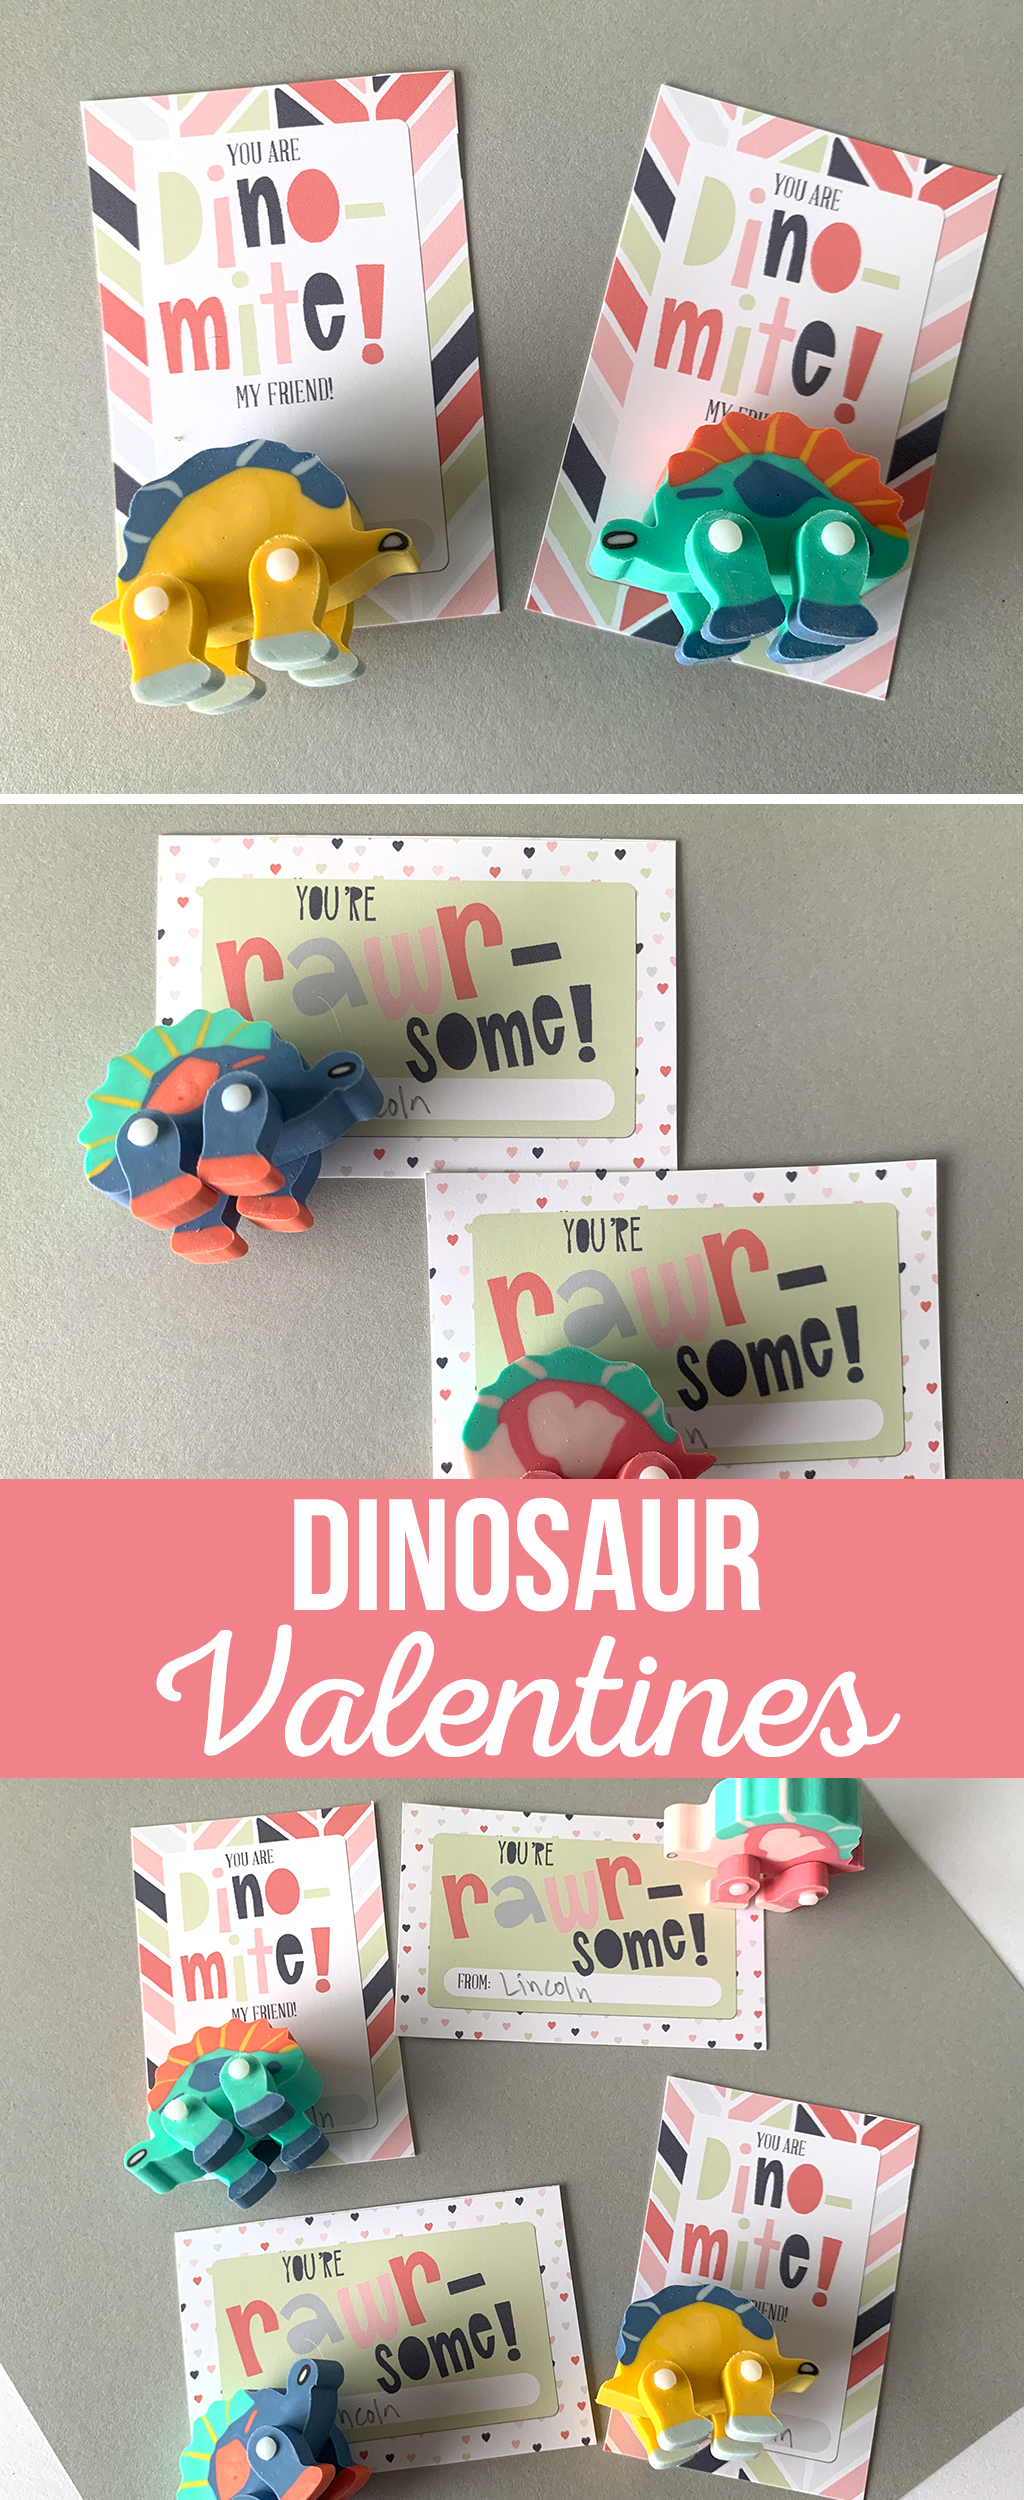 Printable Dinosaur valentines with Dinosaur erasers attached.